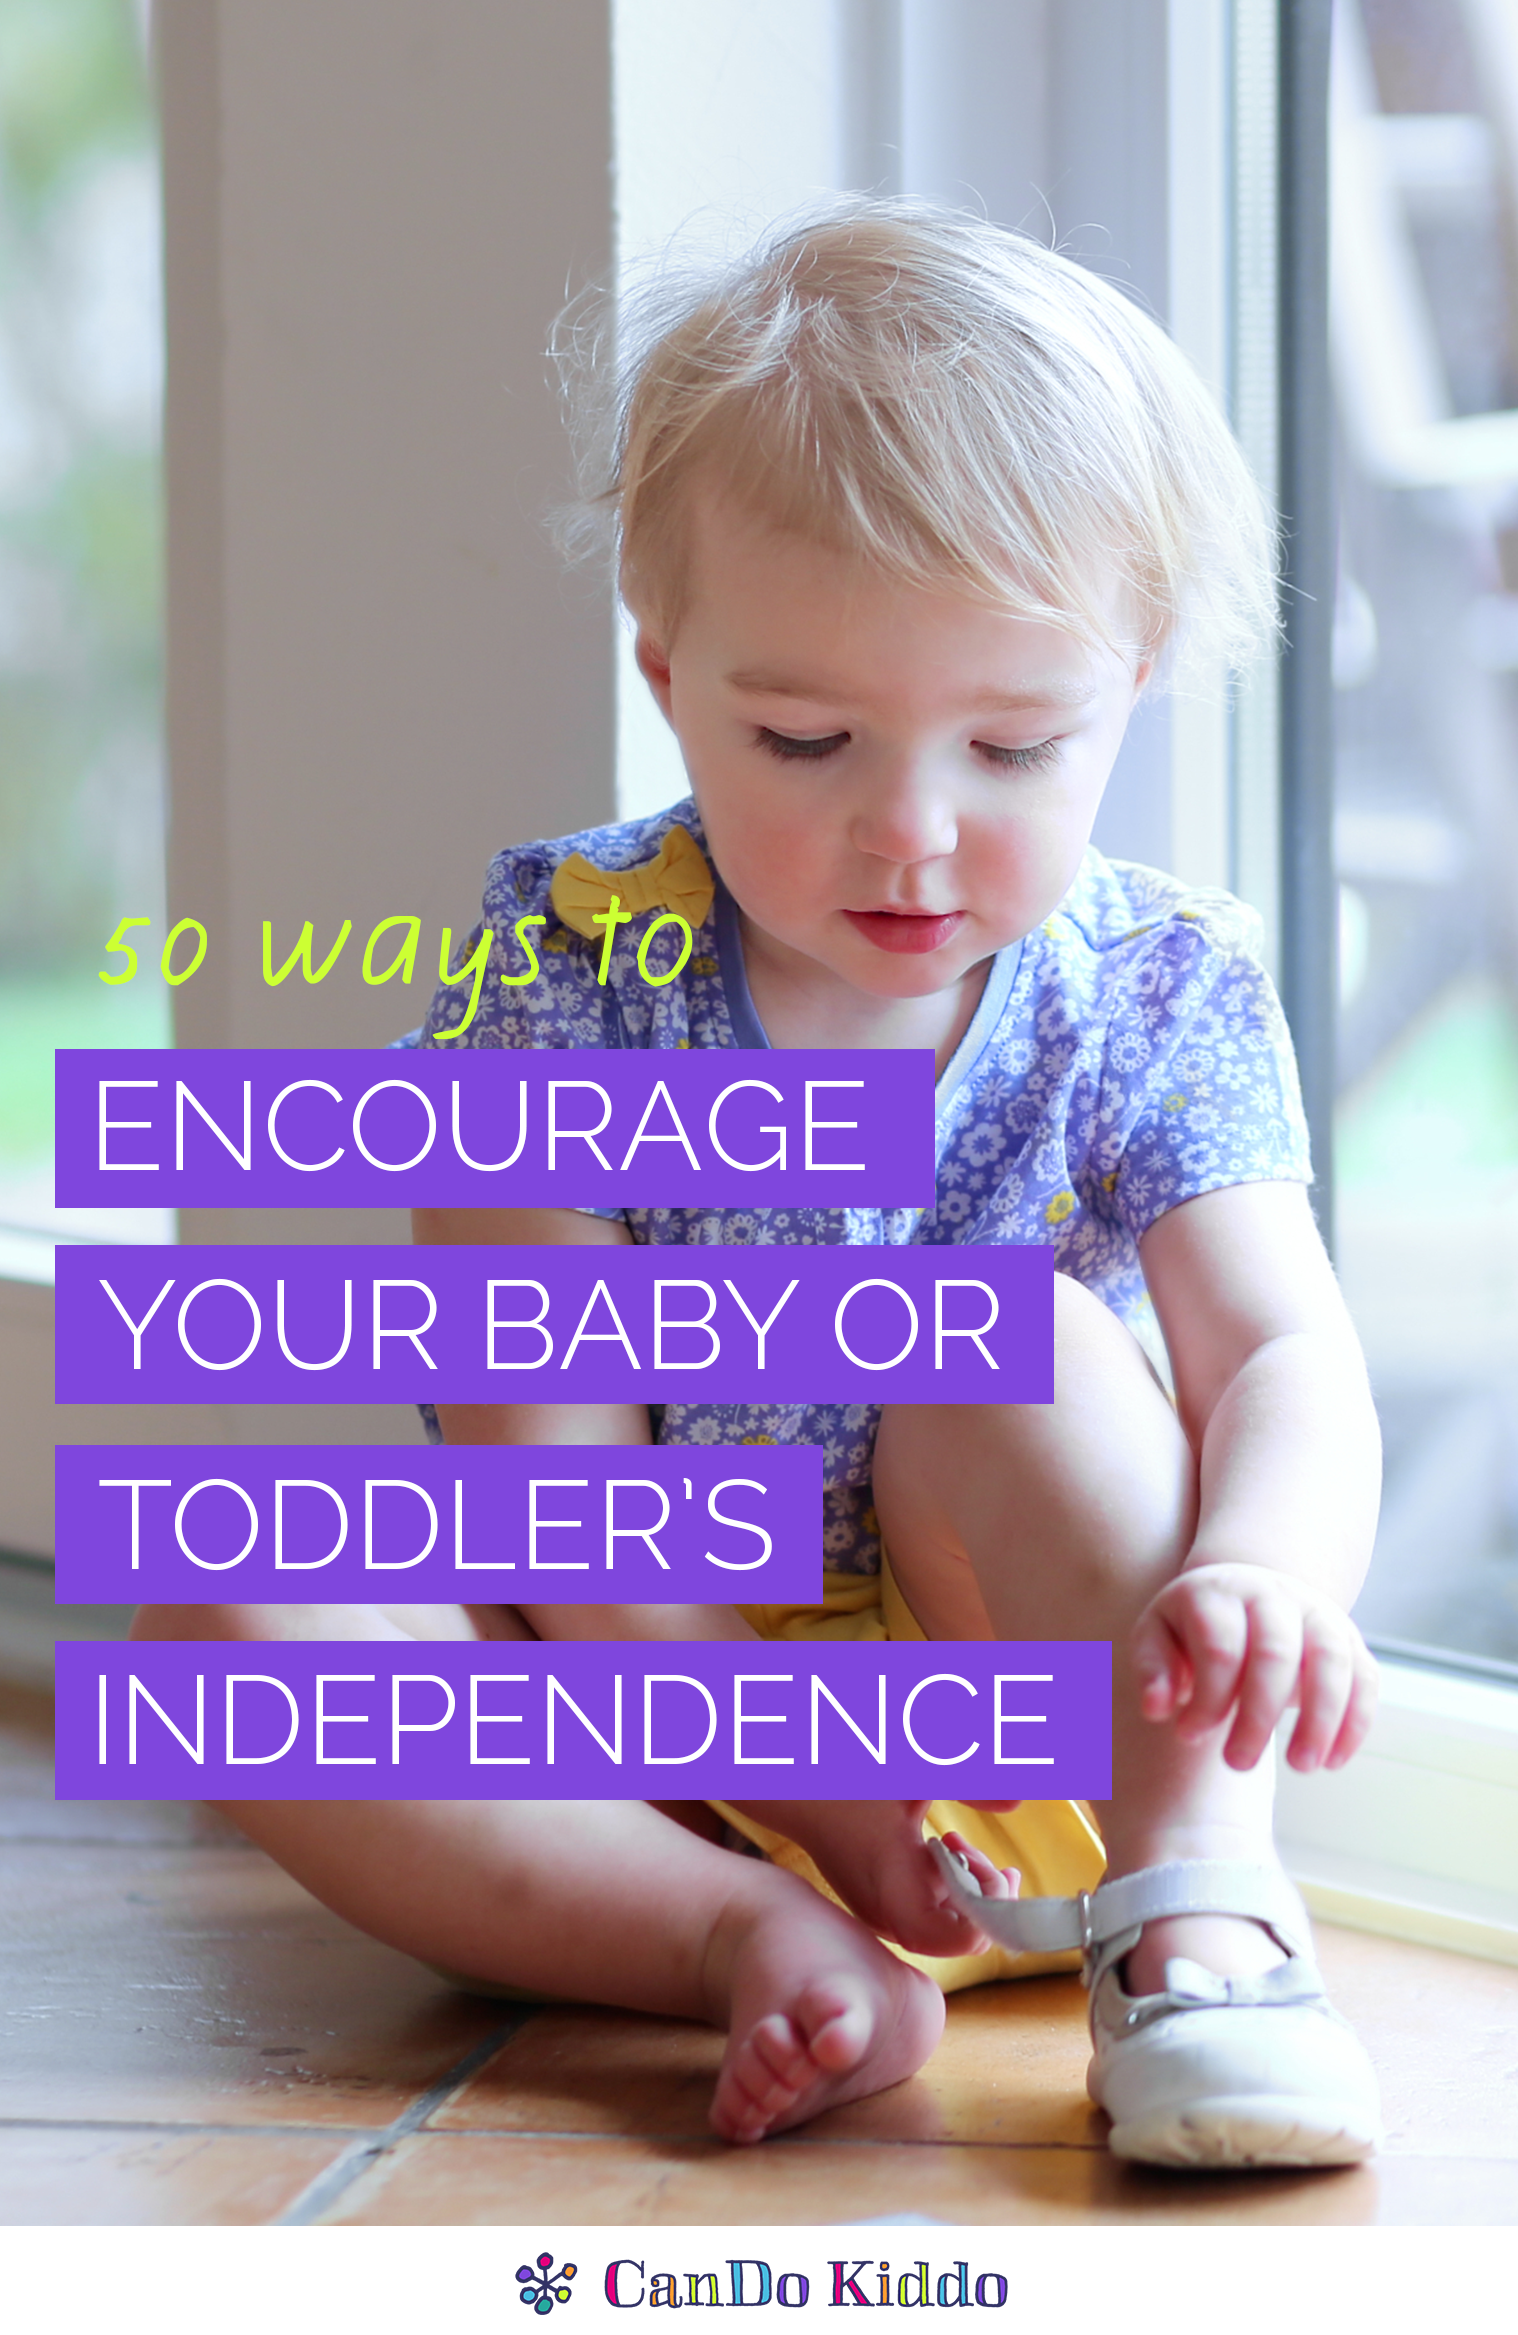 Encouraging independence in your baby and toddler. CanDoKiddo.com